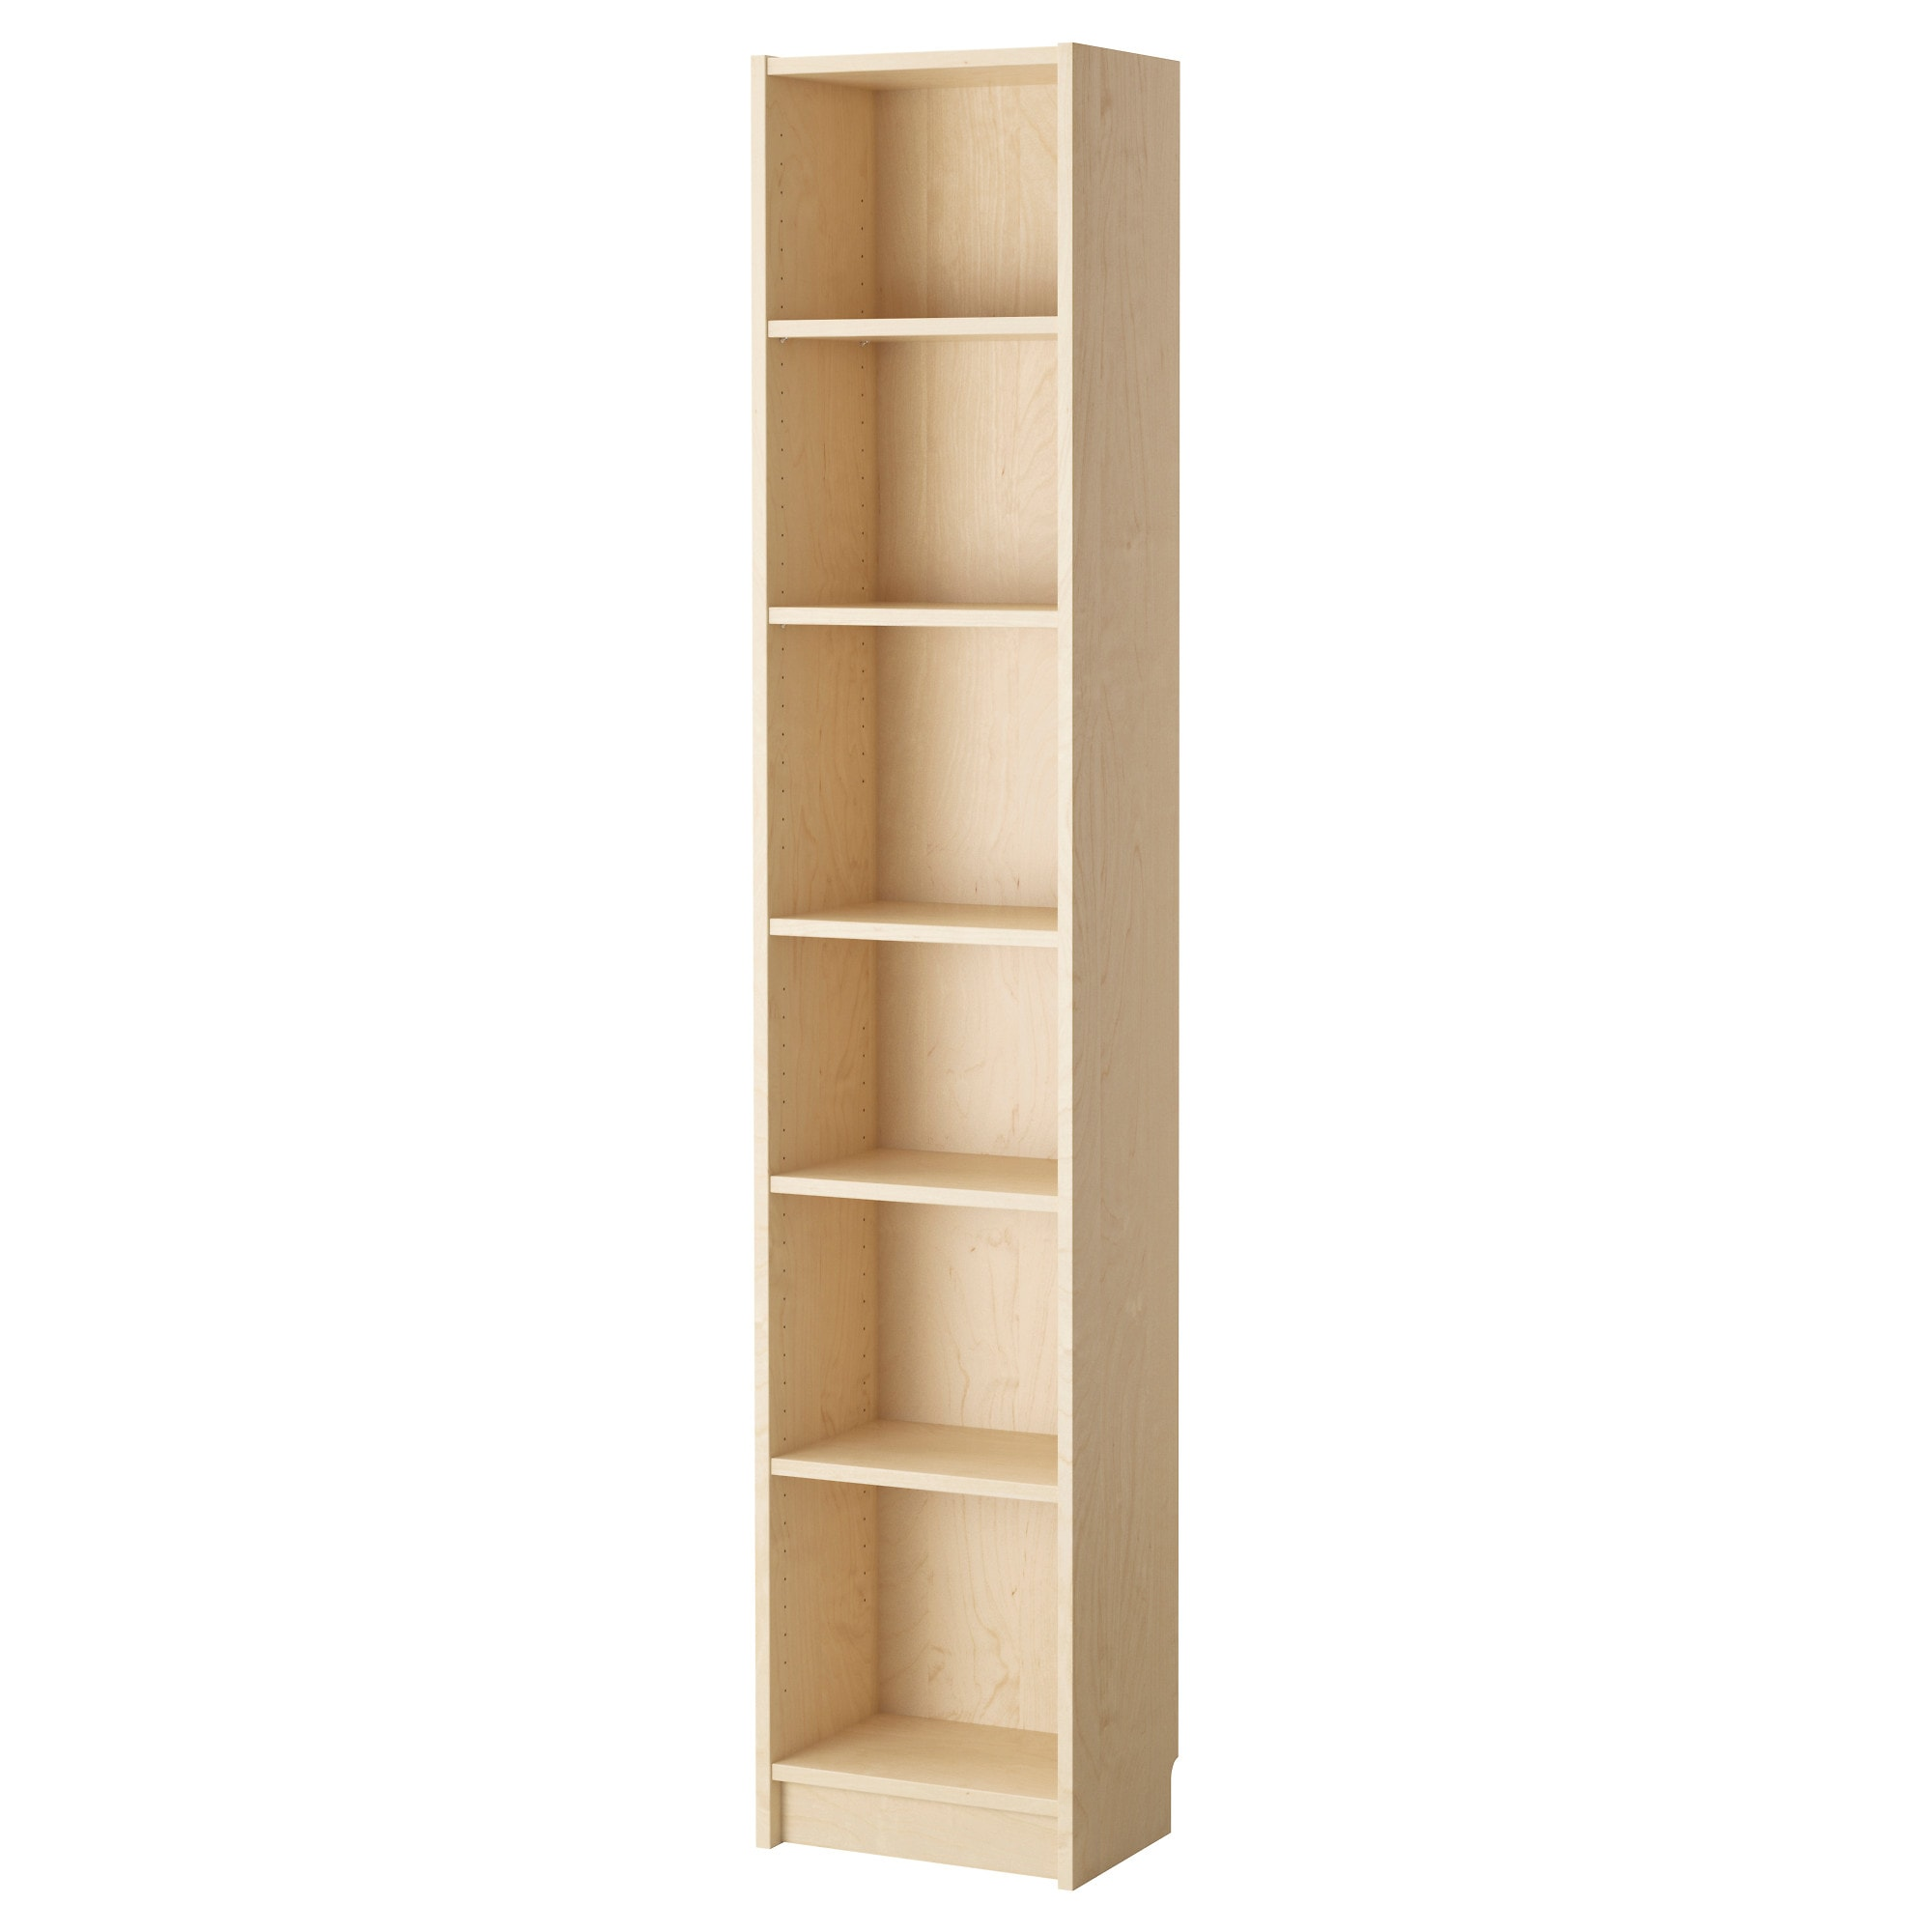 Regal ikea expedit  BILLY Bookcase - birch veneer - IKEA